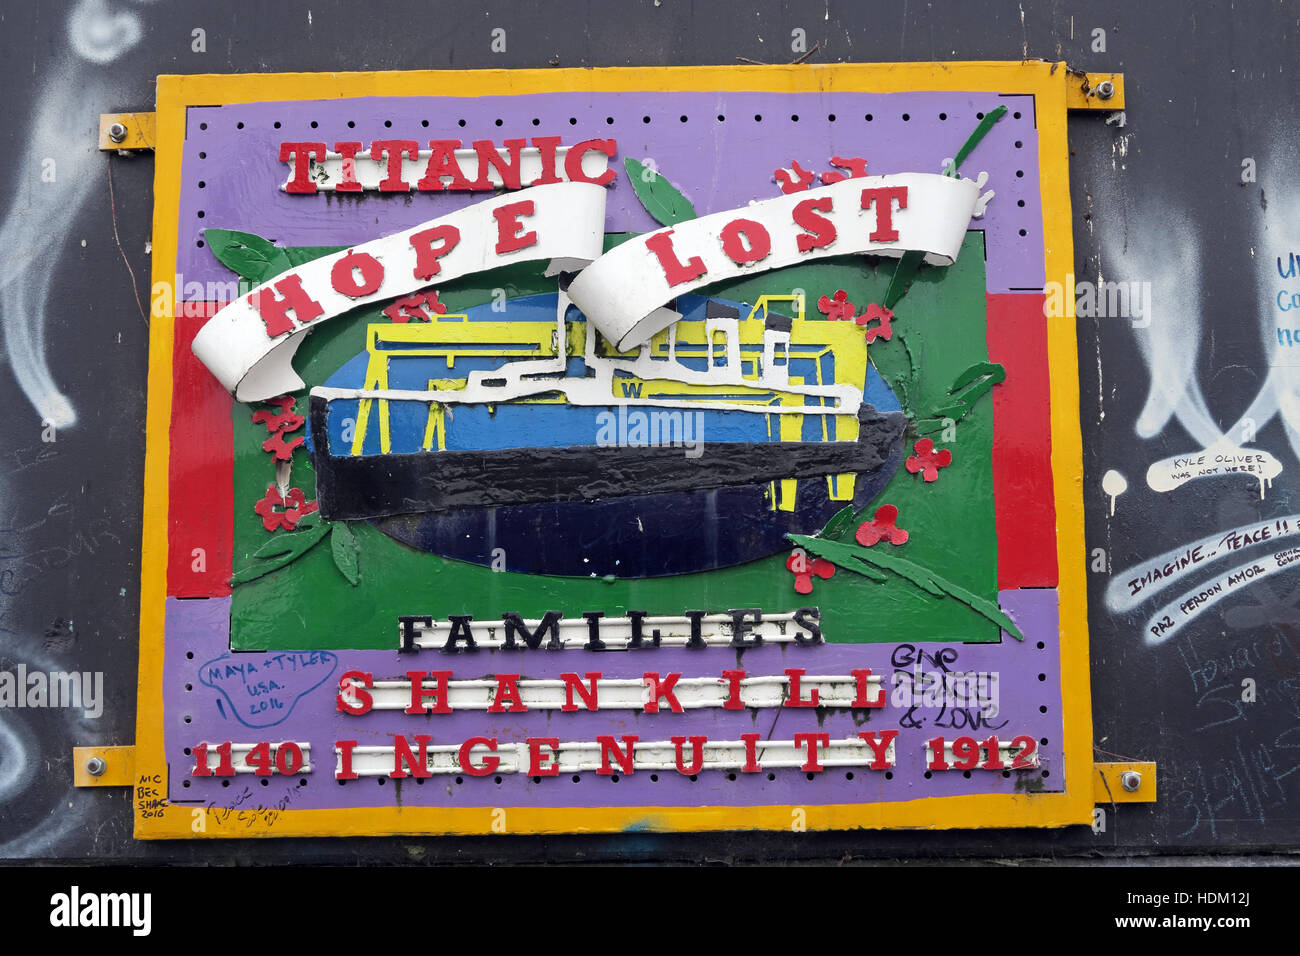 Northern Ireland,Peace,Wall,Cupar way,West Belfast,Belfast,Irish,art,artworks,artwork,Titanic,Hope,Lost,Shankill,ingenuity,1912,ingenuity,rd,Road,boat,ship,weld,welded,Berlin wall,Shankill ingenuity,RMS Titanic,GoTonySmith,@HotpixUK,Tony,Smith,UK,GB,Great,Britain,United,Kingdom,Irish,British,Ireland,problem,with,problem with,issue with,NI,Northern,Northern Ireland,Belfast,City,Centre,Art,Artists,the,troubles,The Troubles,Good Friday Agreement,Peace,honour,painting,wall,walls,tribute,Unionist,unionism,Protestant,Catholic,republican,Sinn Fein,community,Fight,Justice,West,Beal,feirste,martyrs,social,tour,tourism,tourists,urban,six,counties,6,backdrop,county,Antrim,UVF,DUP,British,GB,Empire,Buy Pictures of,Buy Images Of,Images of,Stock Images,Tony Smith,United Kingdom,Great Britain,British Isles,Belfast protestant community,Peoples army,Belfast catholic community,Irelands Berlin wall